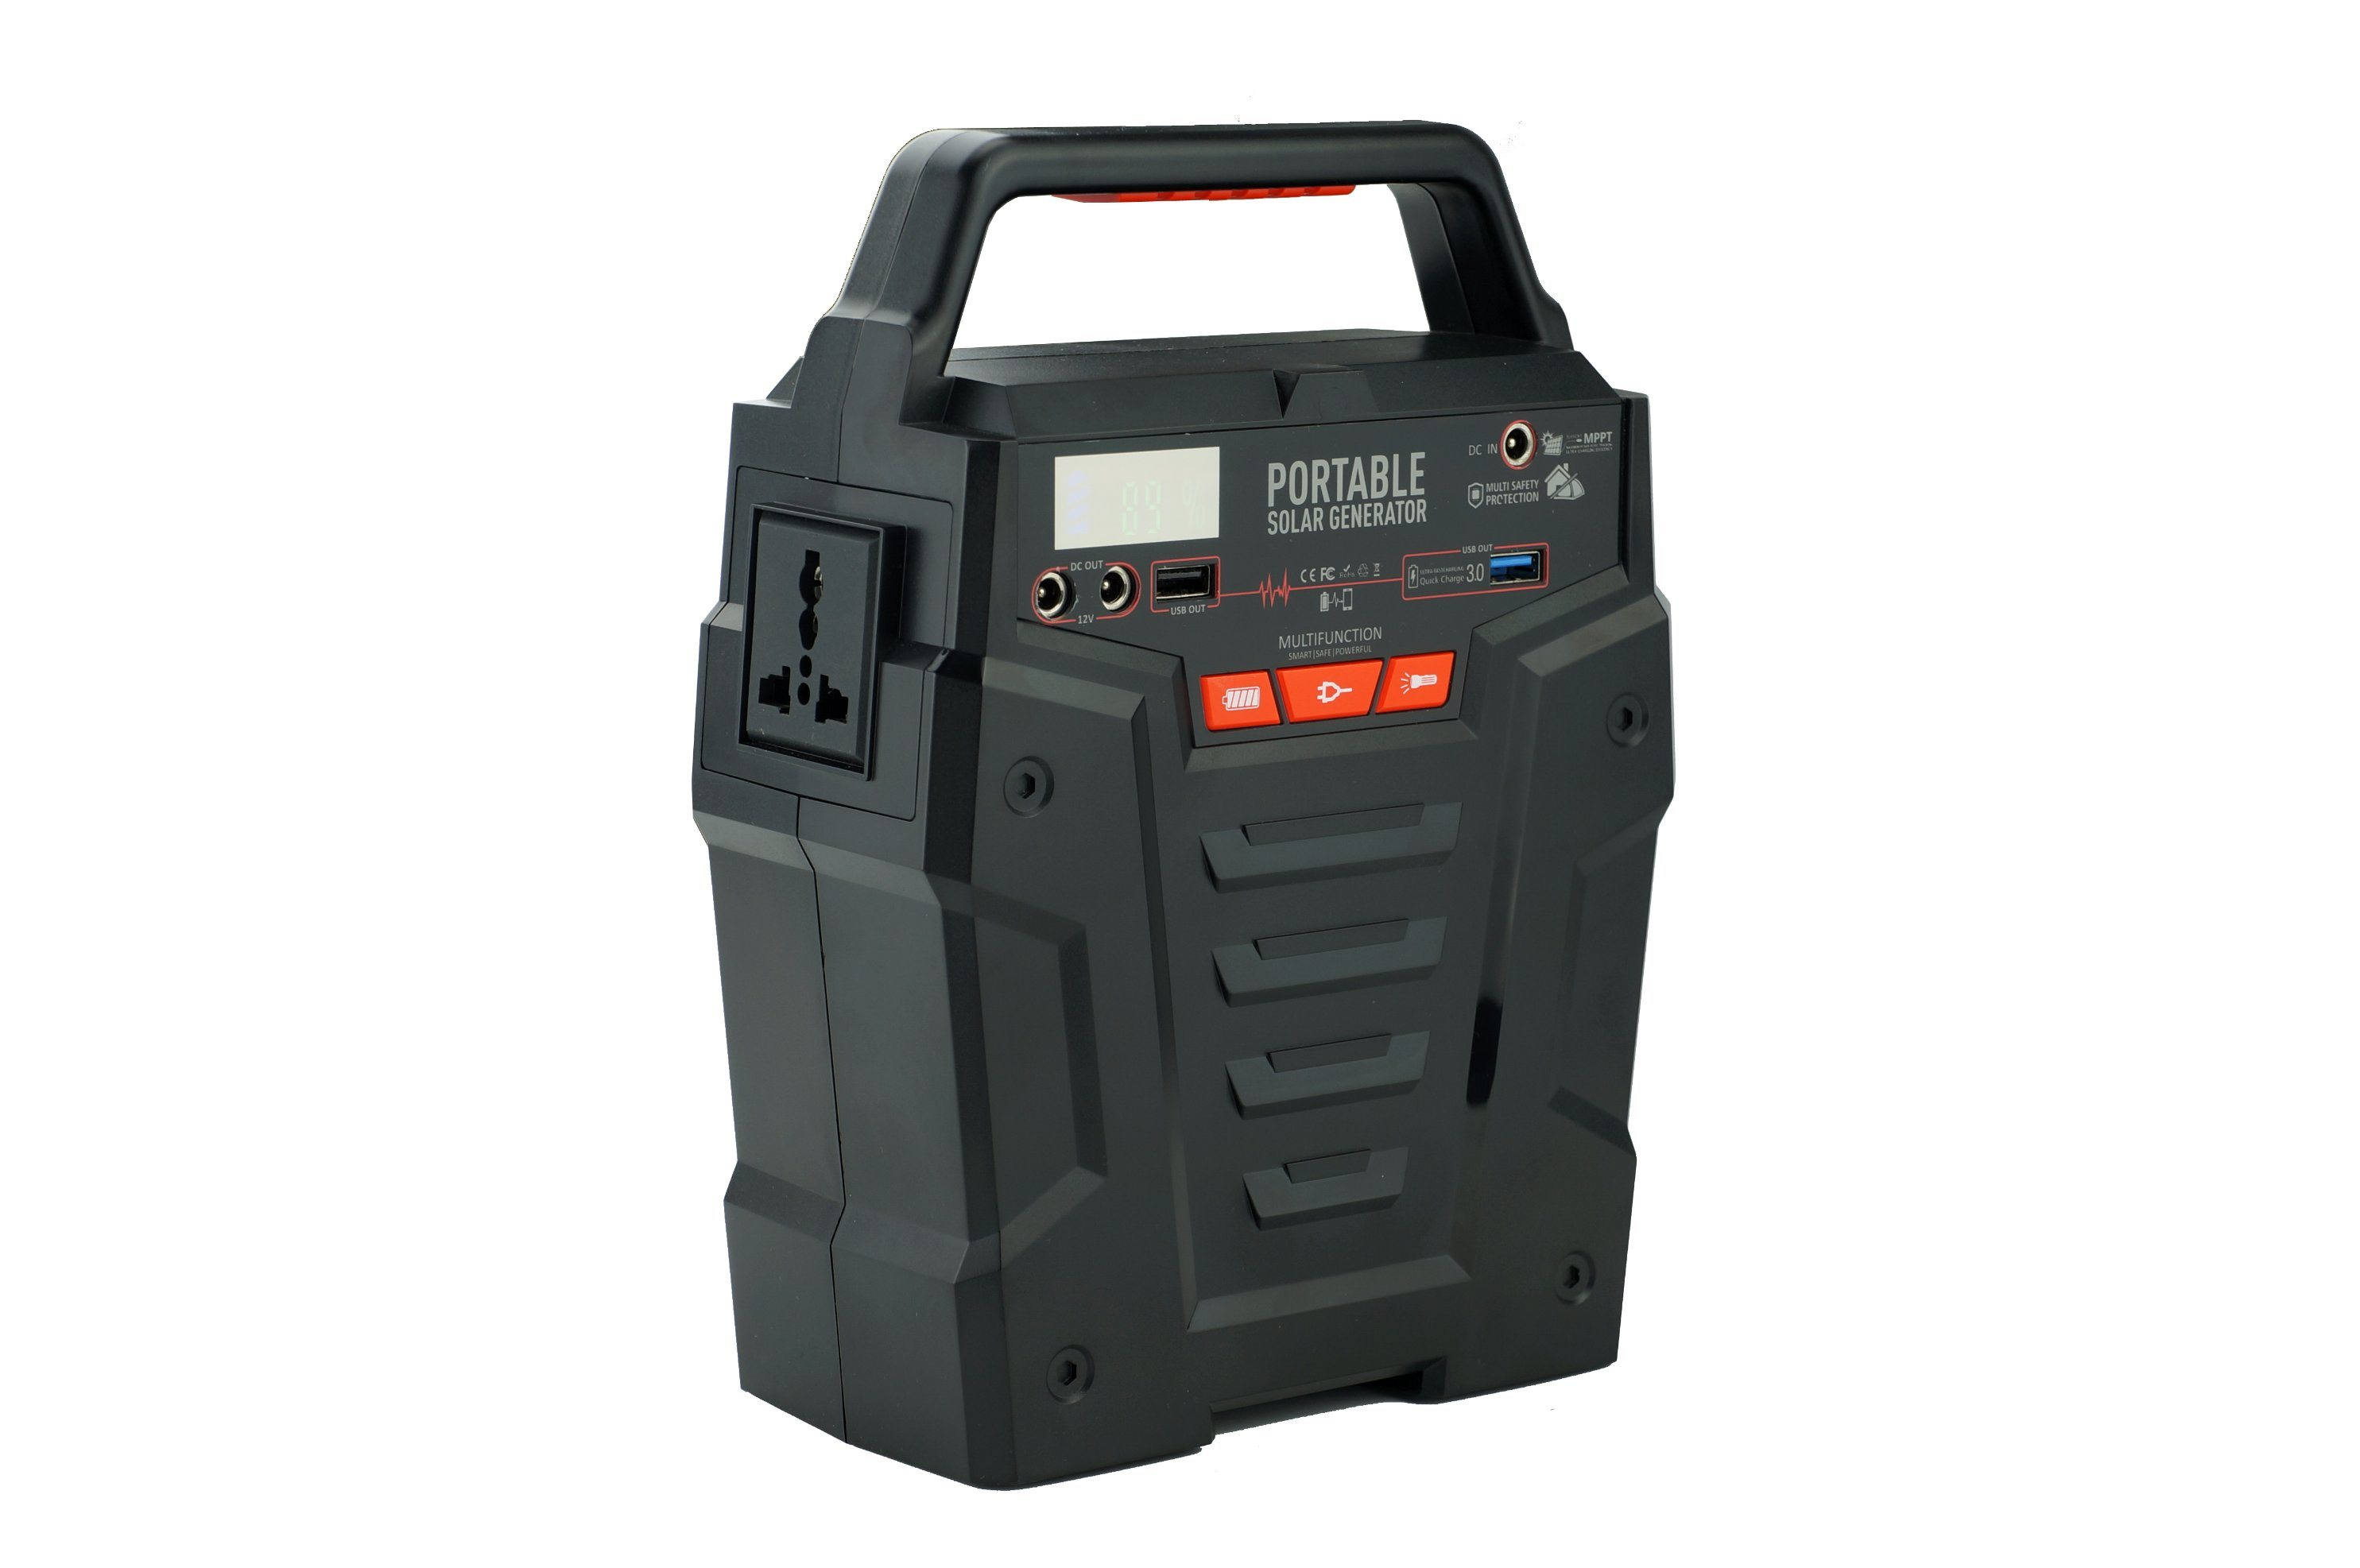 china portable generator power station with ac dc outlet usb ports